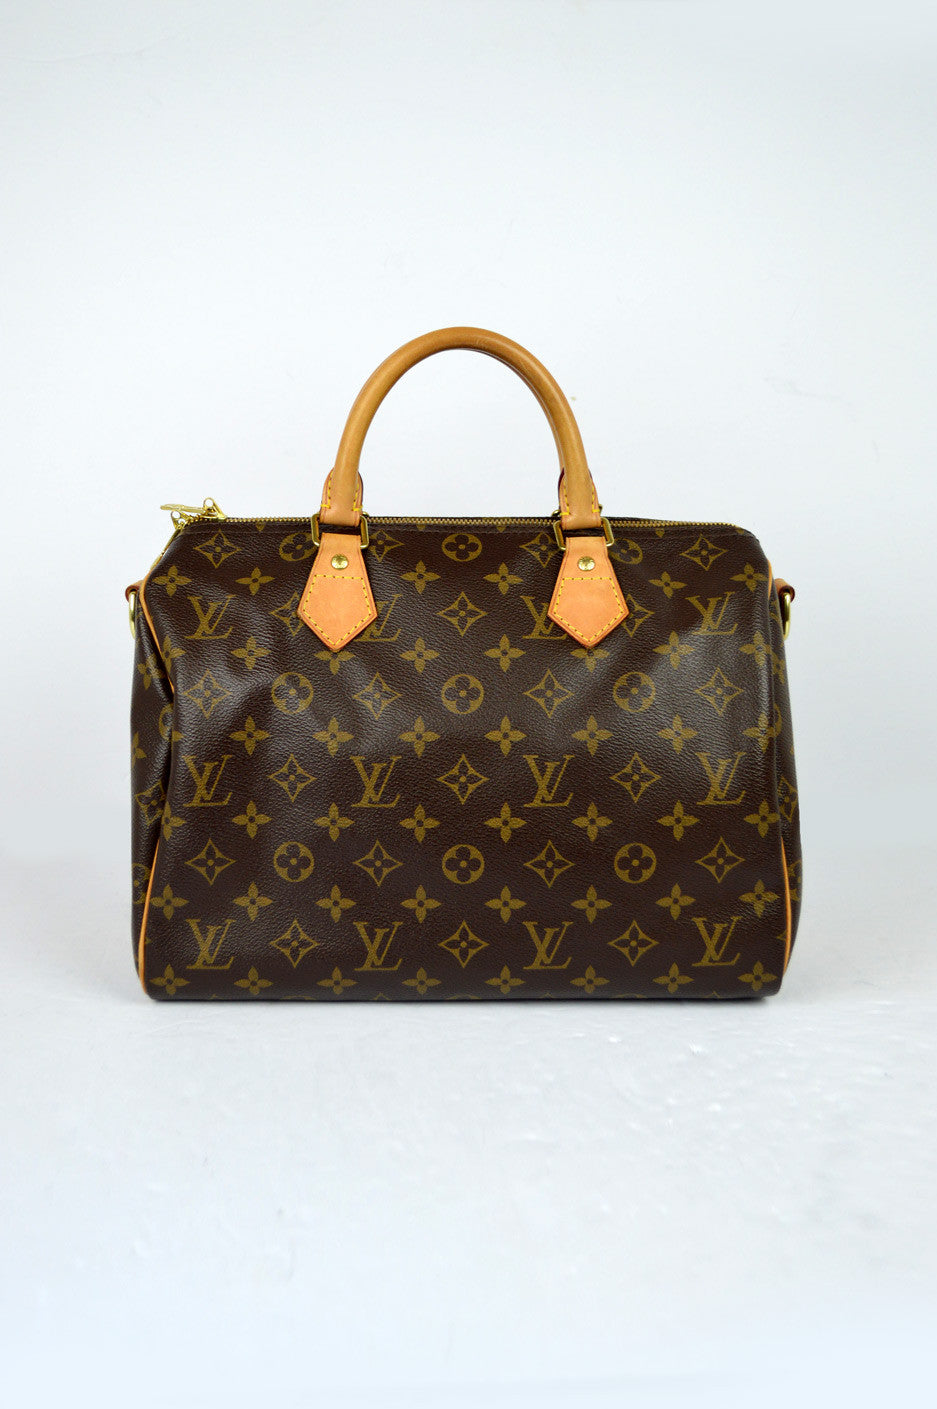 Monogram Coated Canvas Speedy Bandouliere 30 - ON LAYAWAY